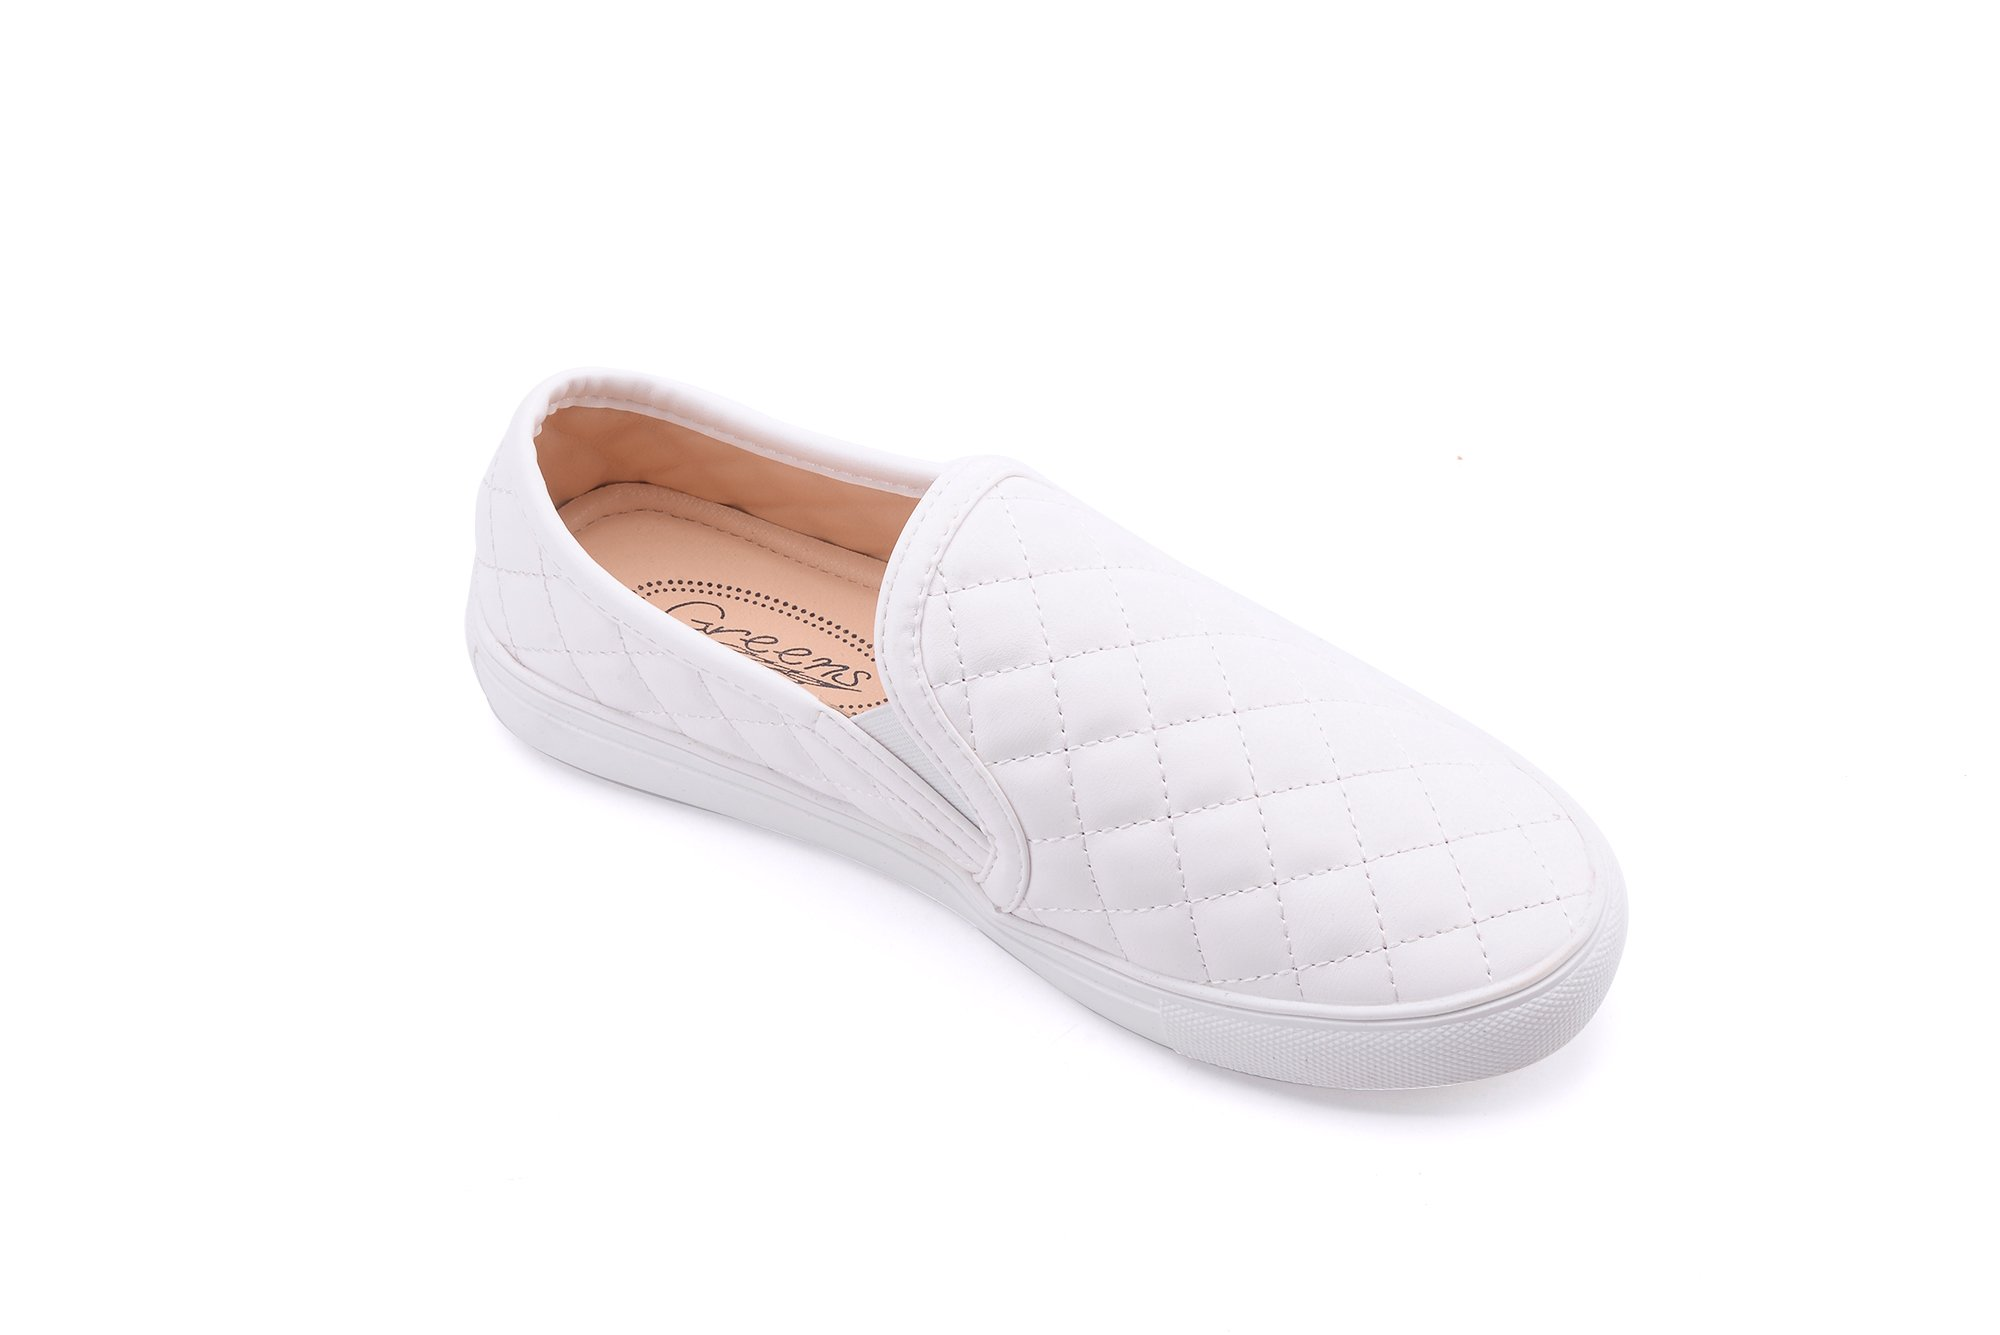 GREENS Wanta Women Canvas Fierce Quilt Pattern Slip On Fashion Sneakers, White 10 by GREENS (Image #2)